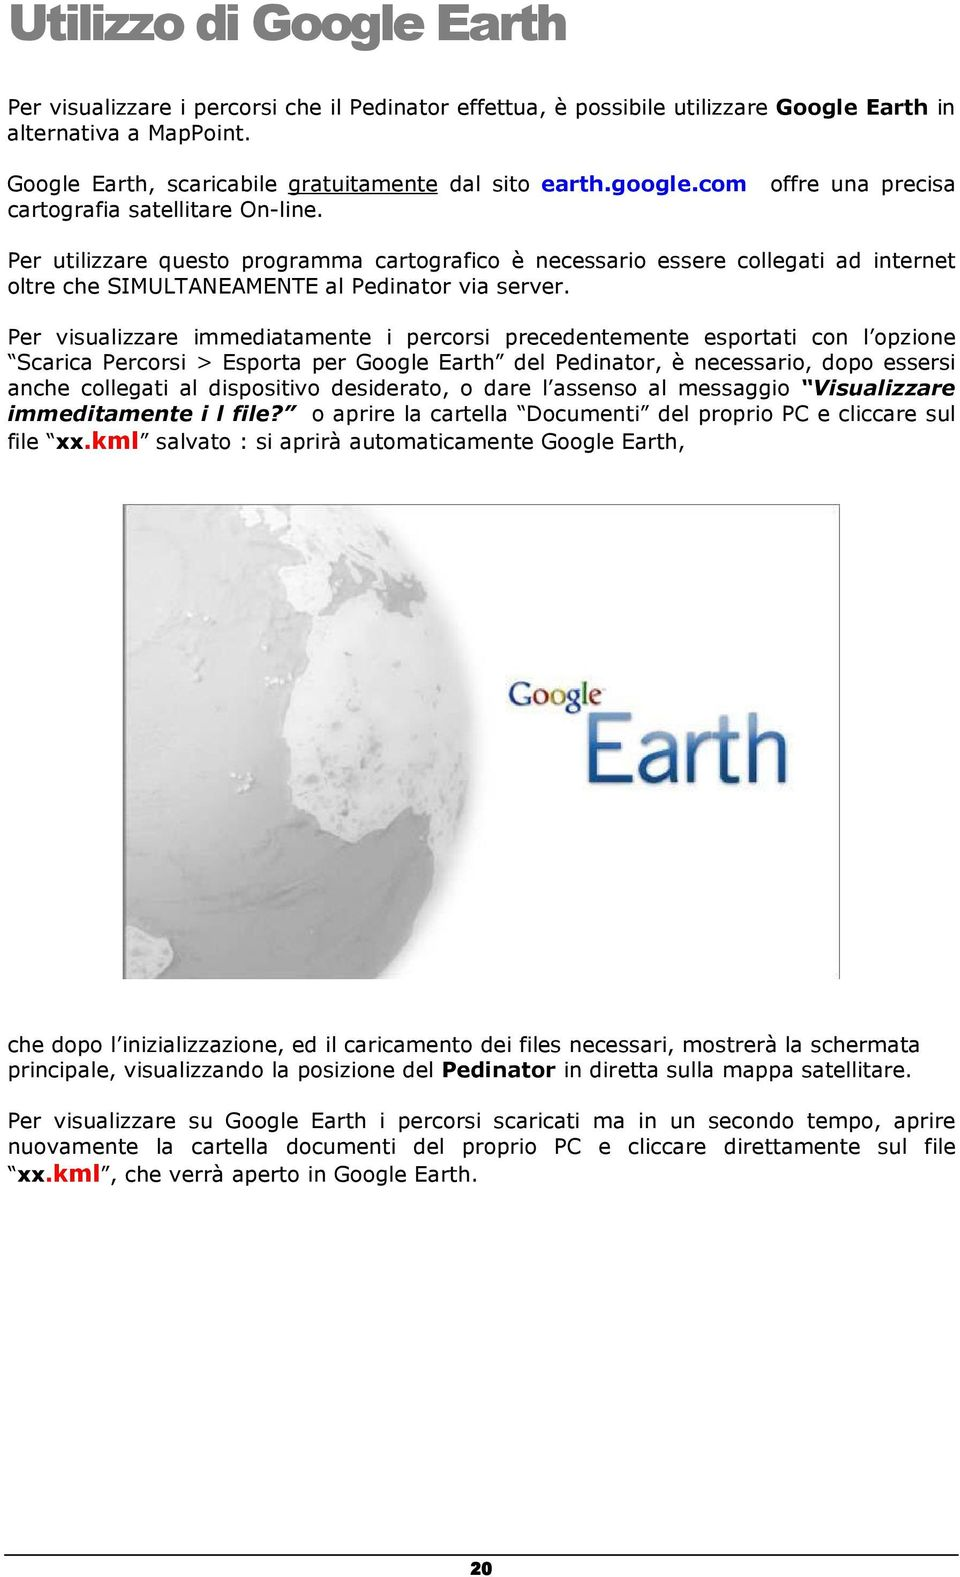 Per visualizzare immediatamente i percorsi precedentemente esportati con l opzione Scarica Percorsi > Esporta per Google Earth del Pedinator, è necessario, dopo essersi anche collegati al dispositivo